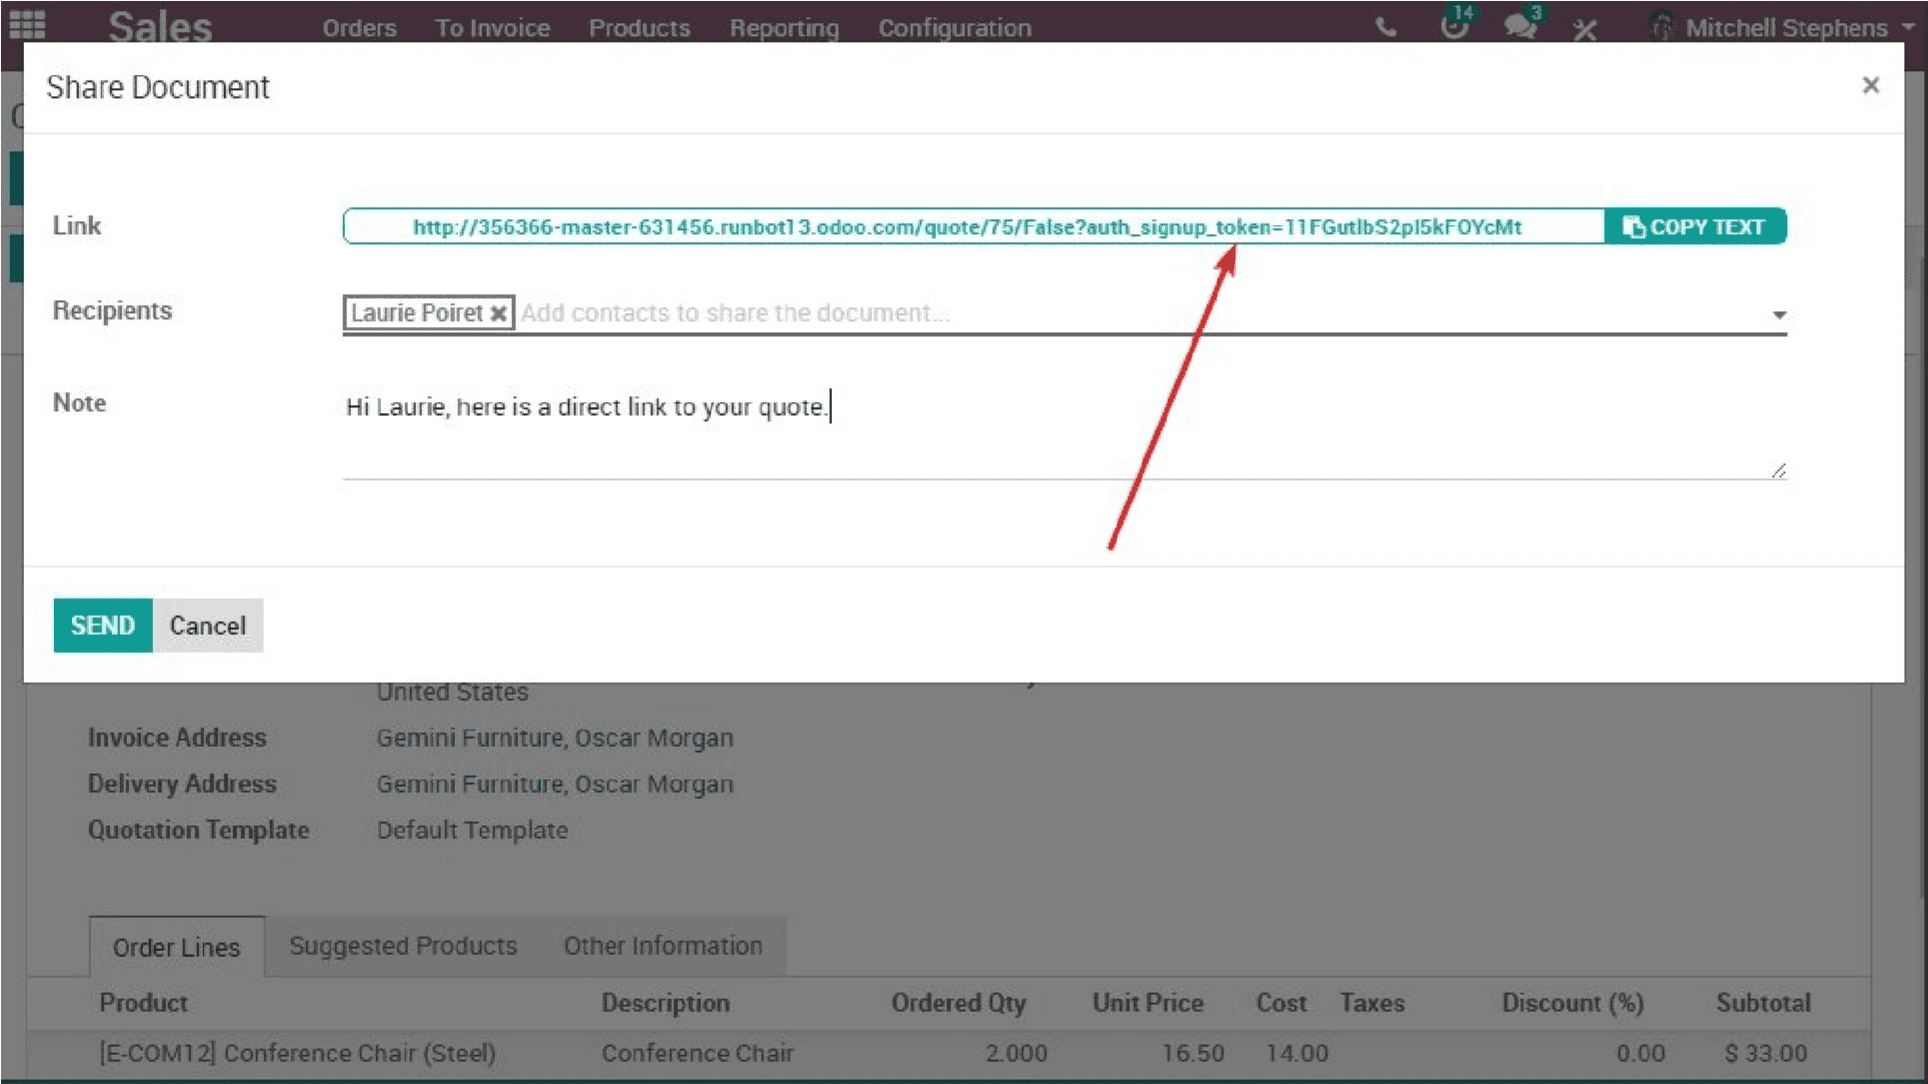 odoo-12-features-7-cybrosys